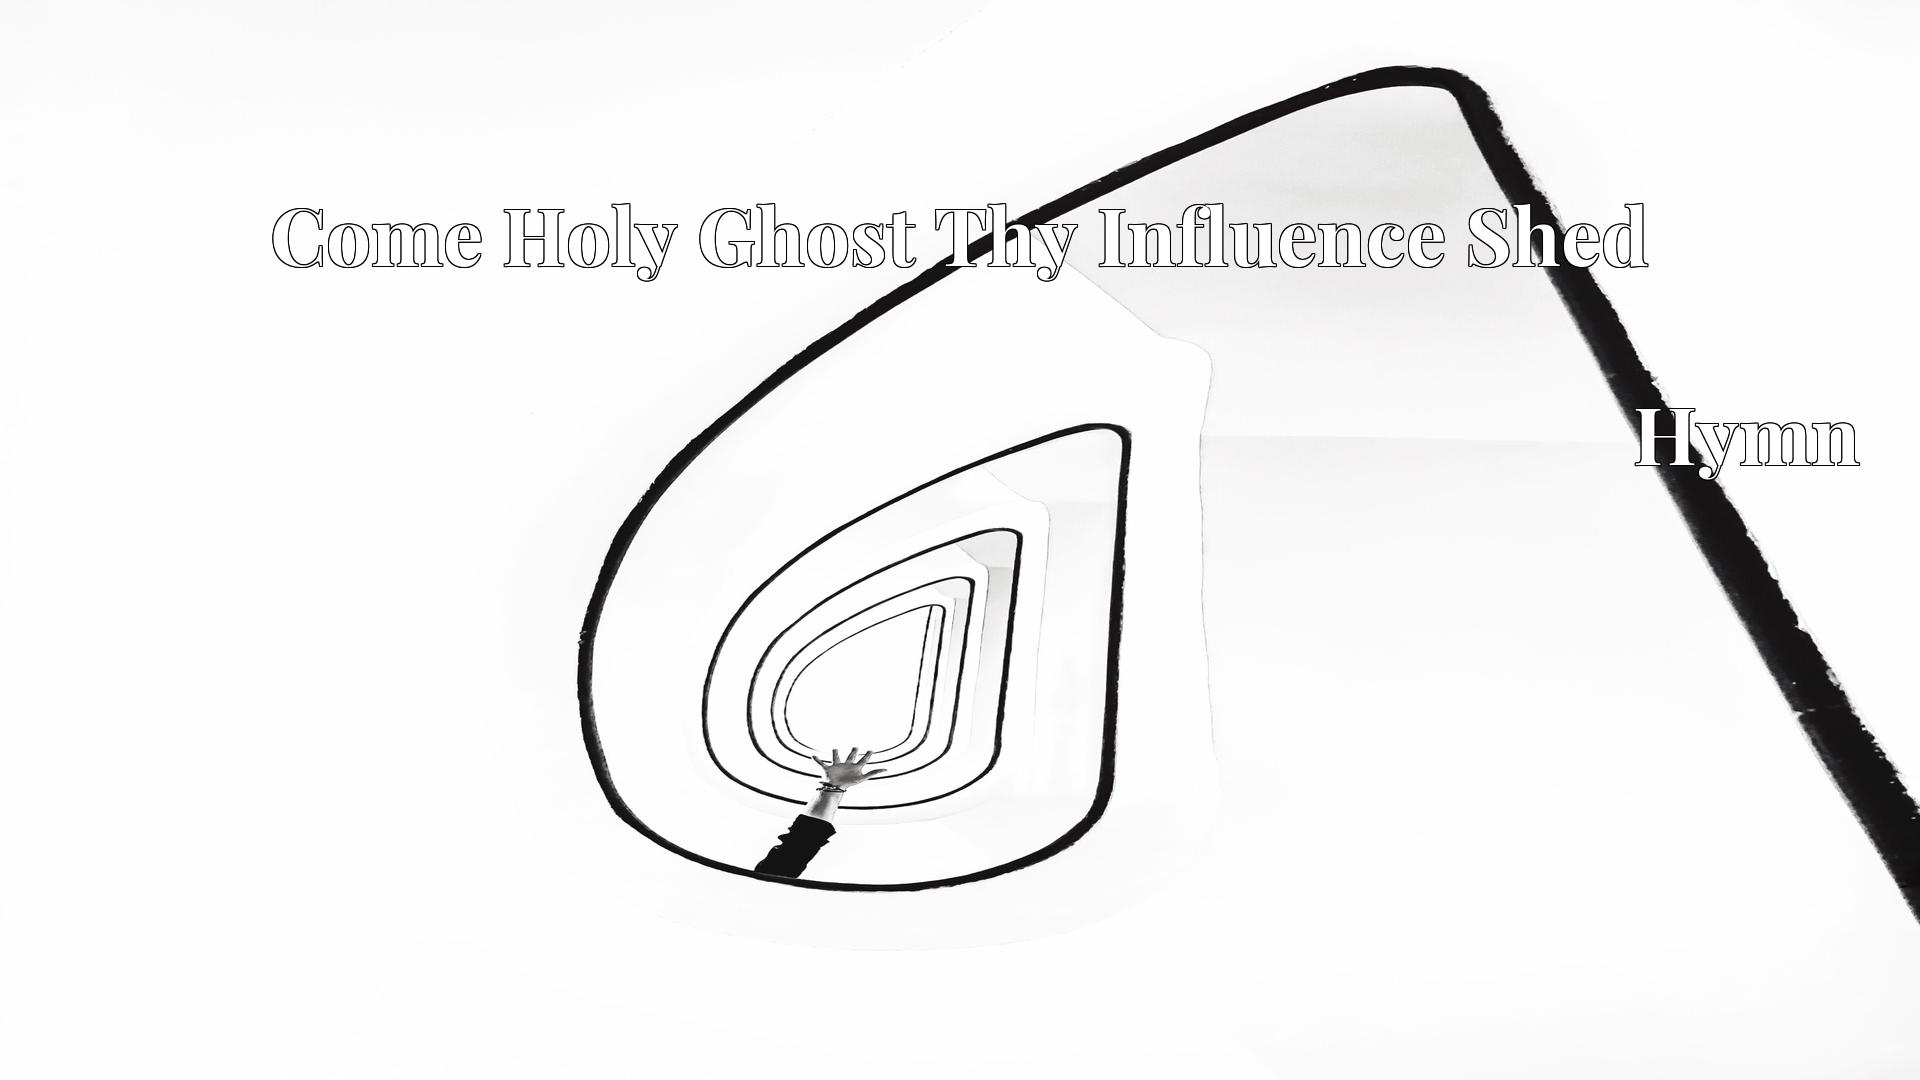 Come Holy Ghost Thy Influence Shed - Hymn